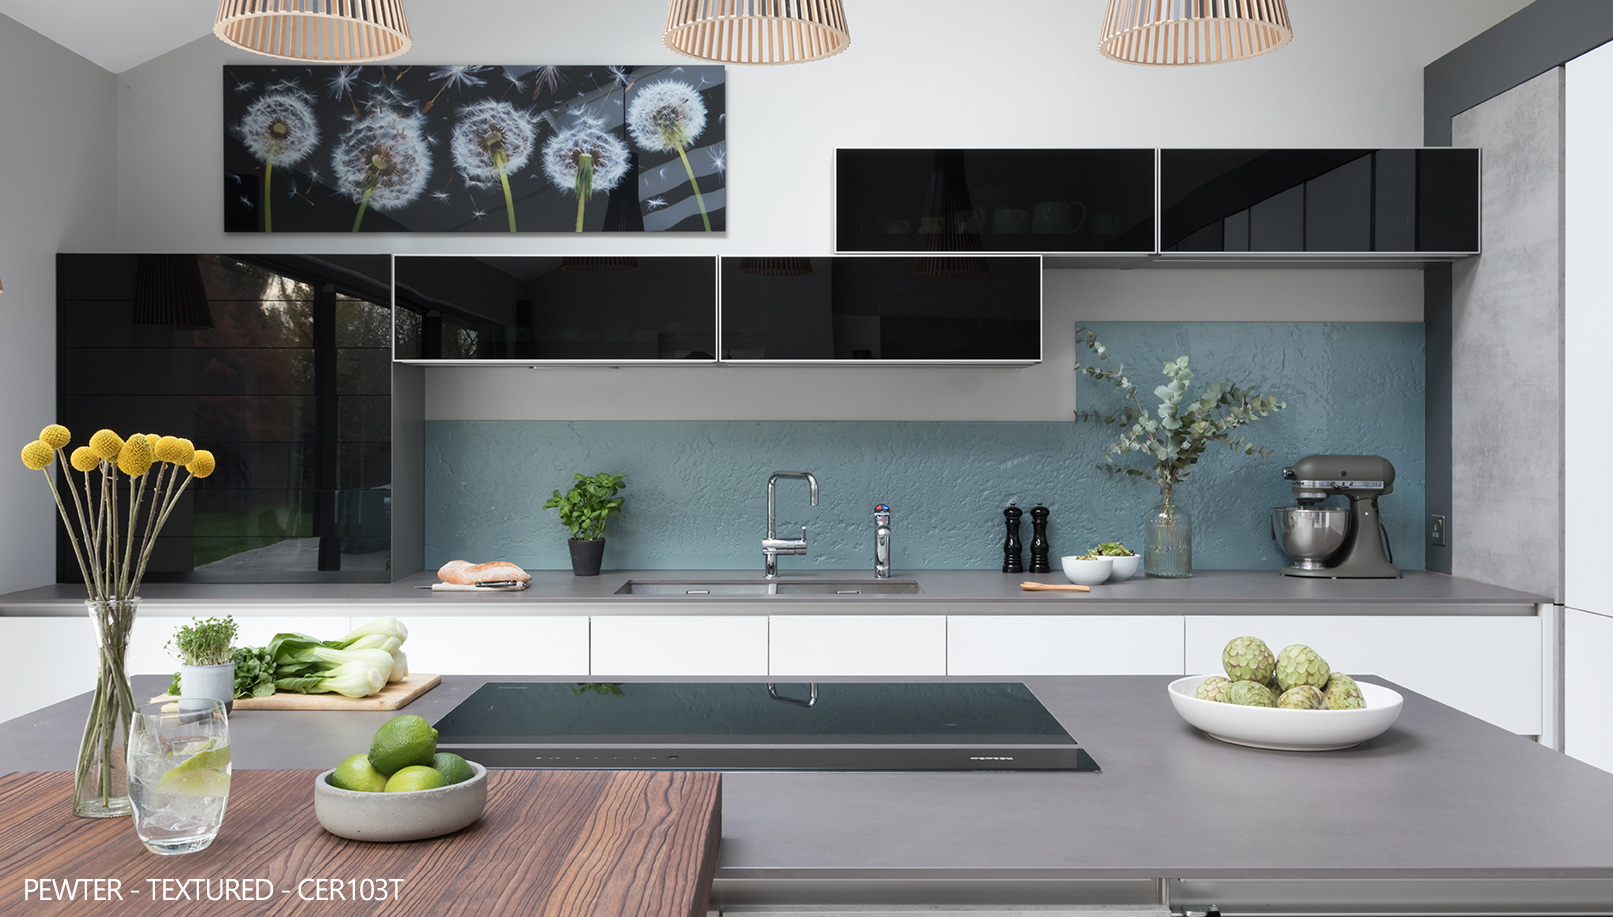 Ceralsio Pewter grey textured worktop with wooden island and blue splash back and black gloss cupboards